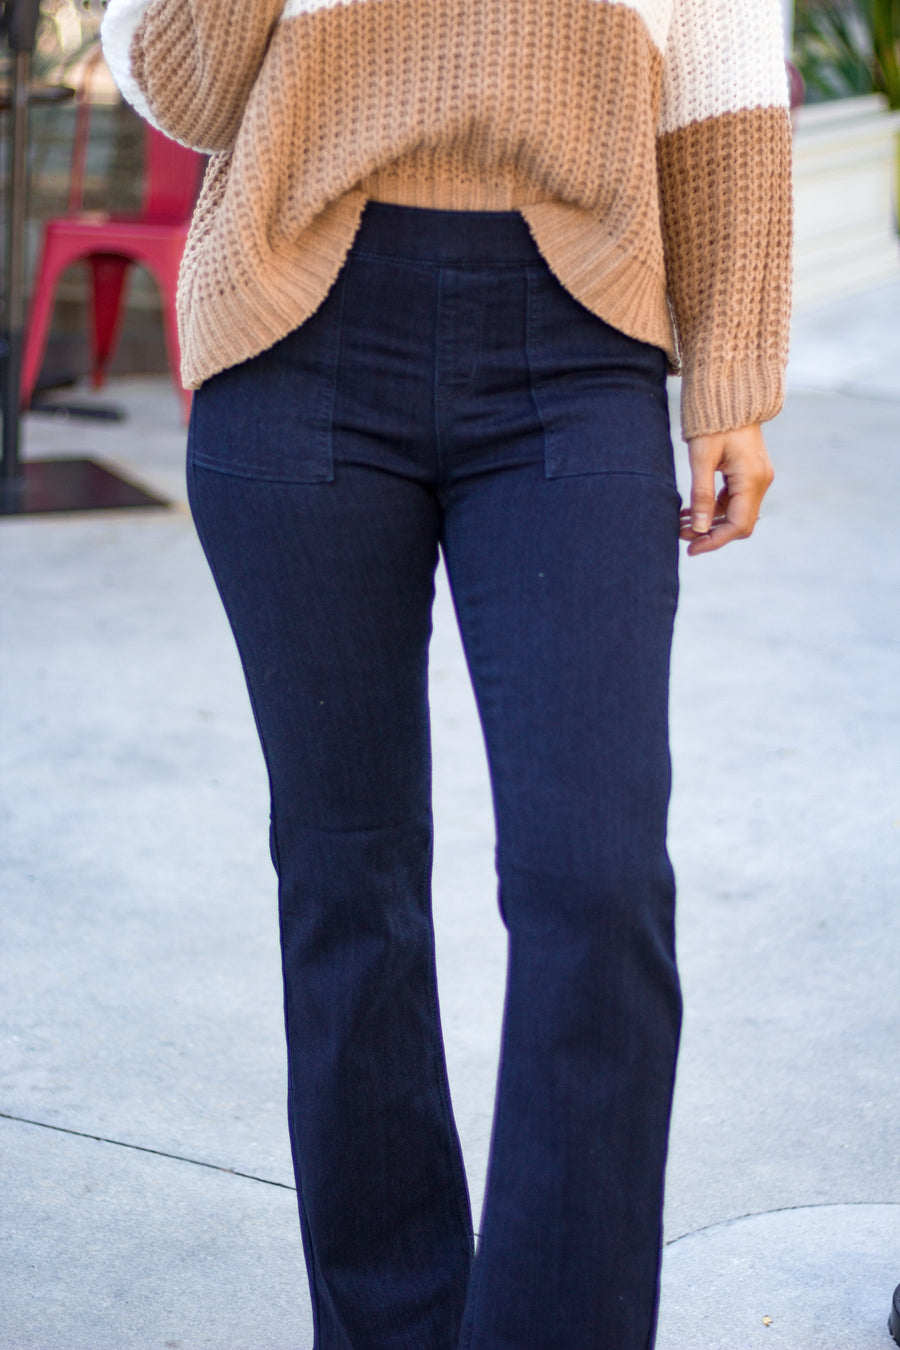 Jeggings have an elastic pull-up waistband with faux square pockets on the side, functional back pockets, and flows down to fitted pant legs into a bell bottom hem.